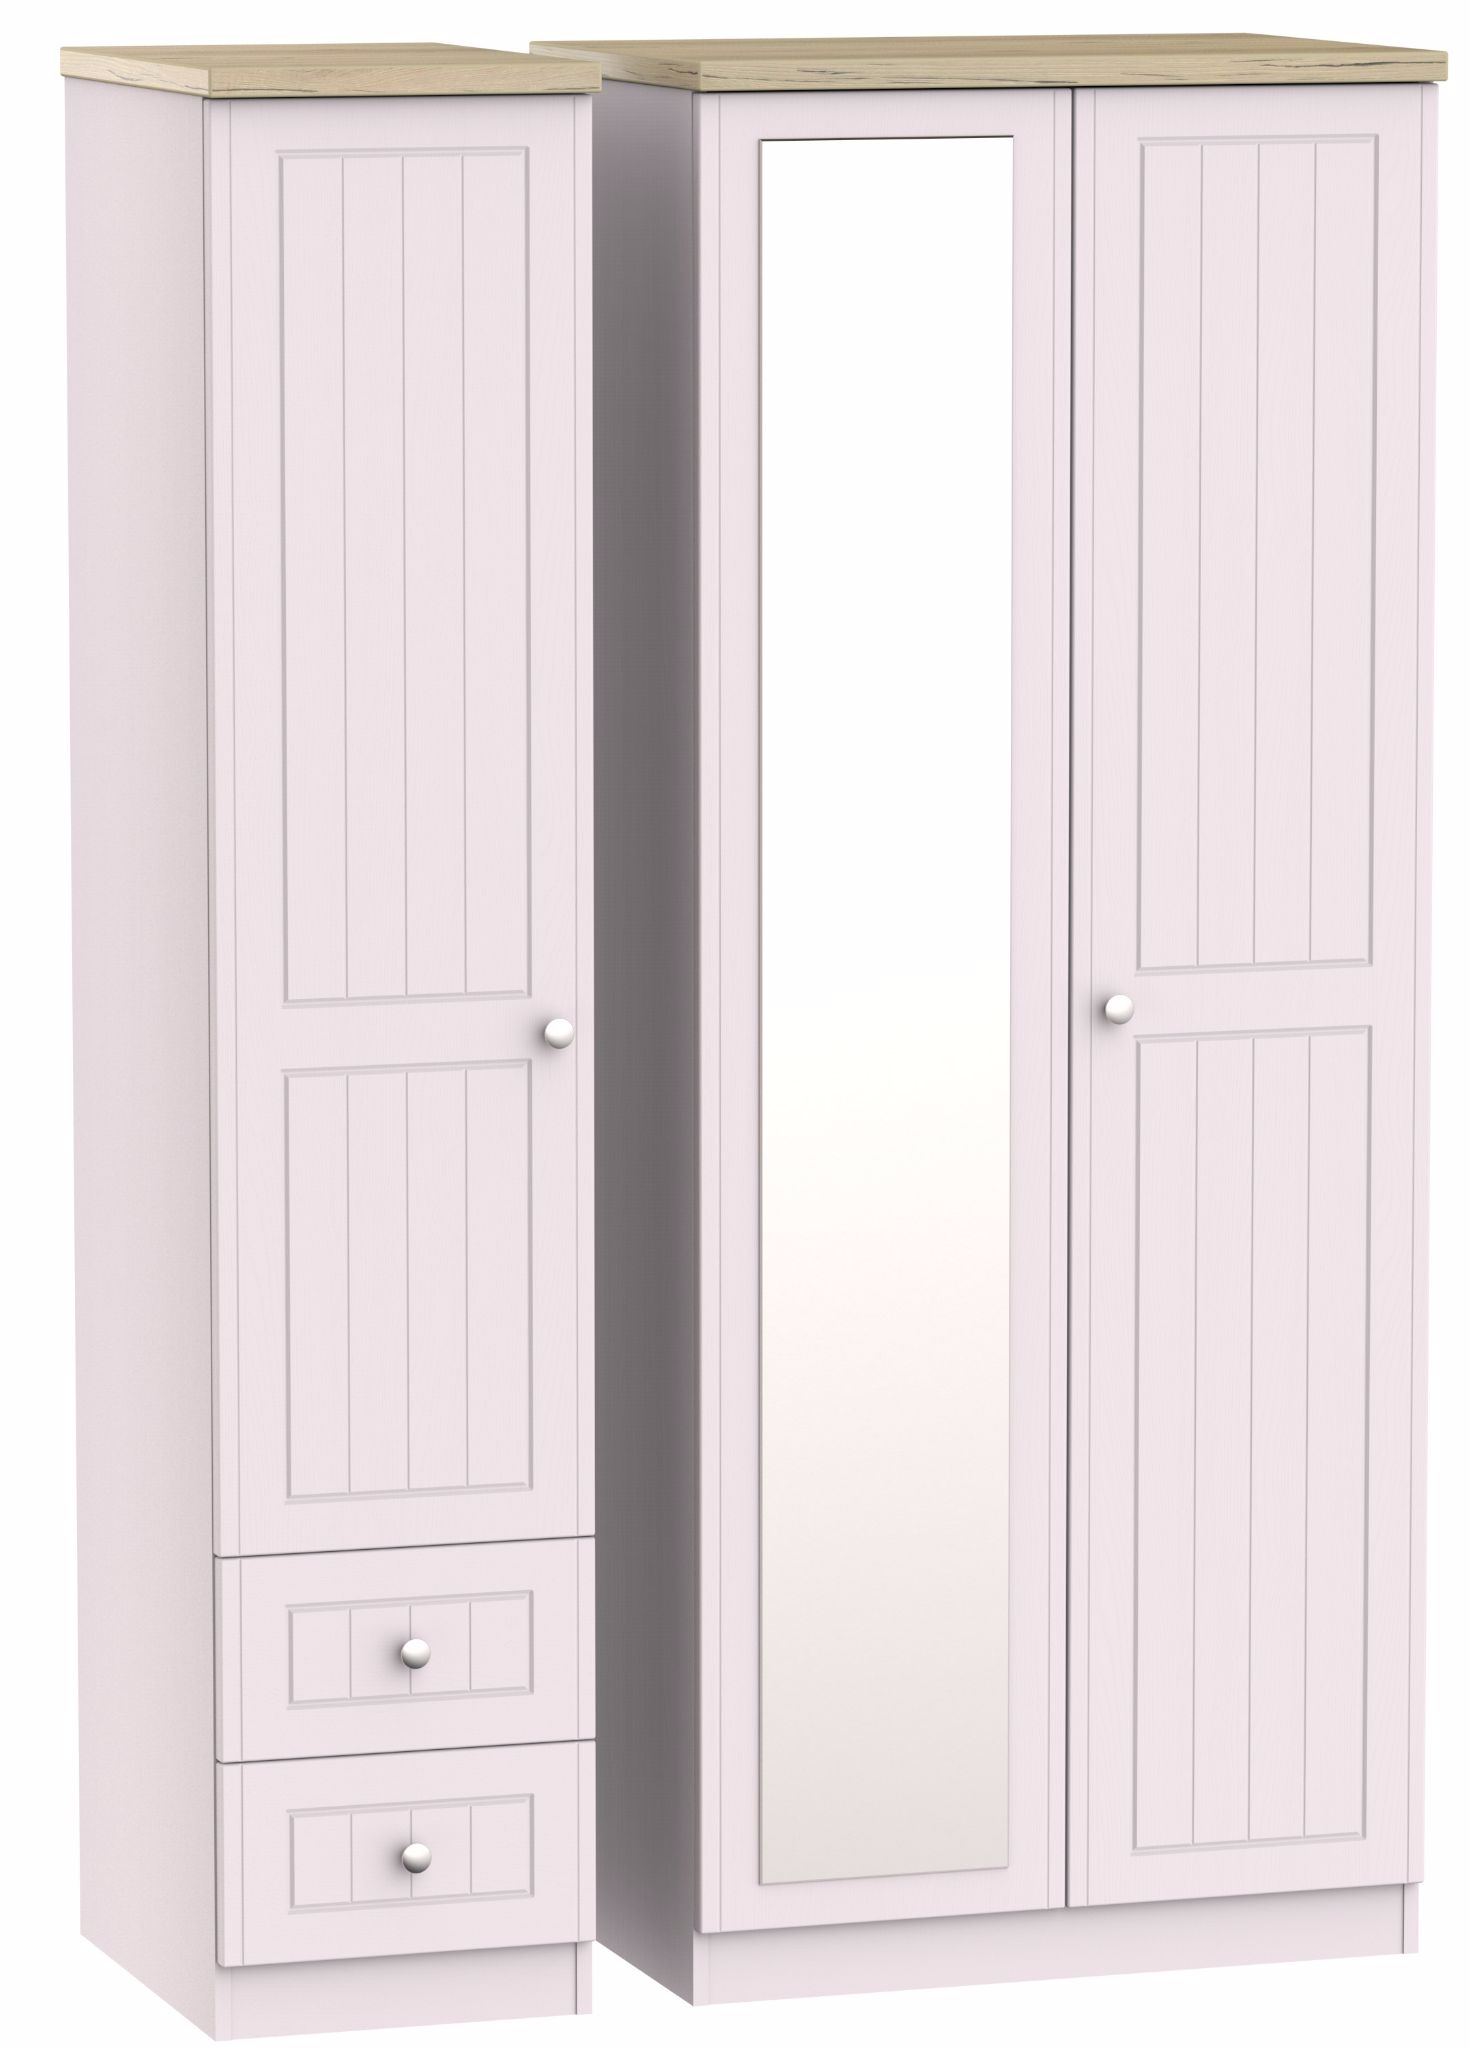 Most Popular Triple Mirrored Wardrobes With Regard To Vienna Tall Triple Mirrored Wardrobe With Drawer Wardrobe (View 2 of 15)